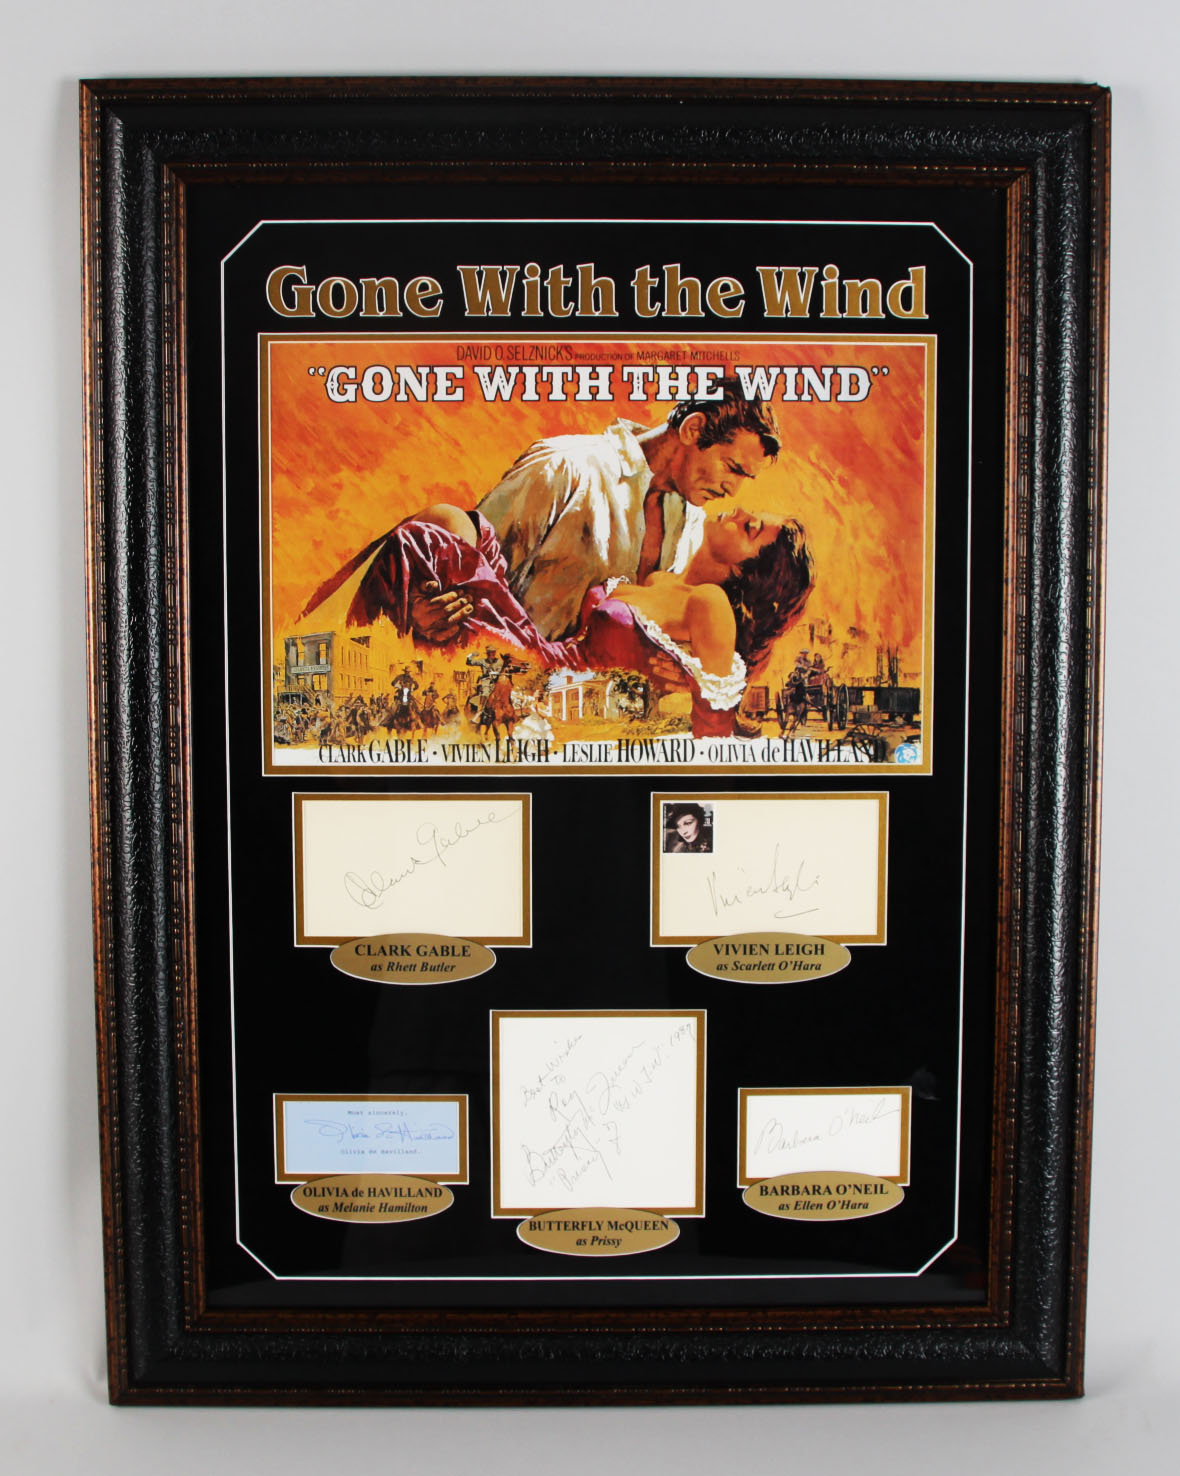 Gone With The Wind Cast Signed Display (Vintage Album Pages) COA JSA